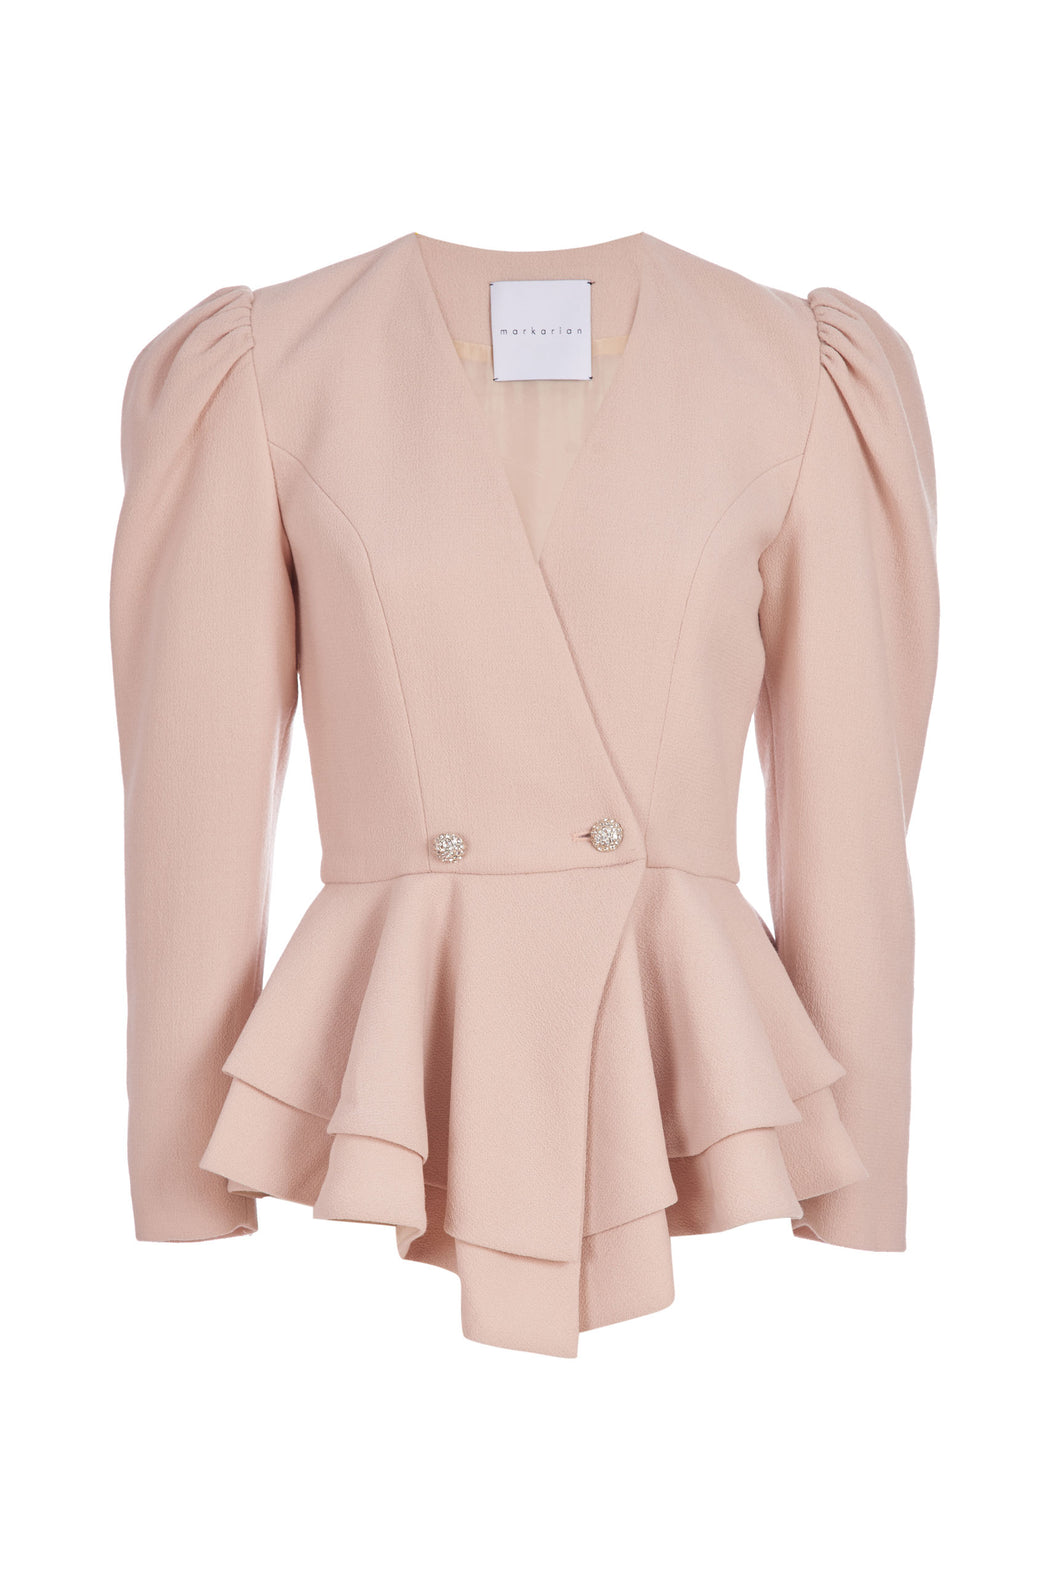 Viola Beige Wool Peplum Jacket with Crystal Buttons